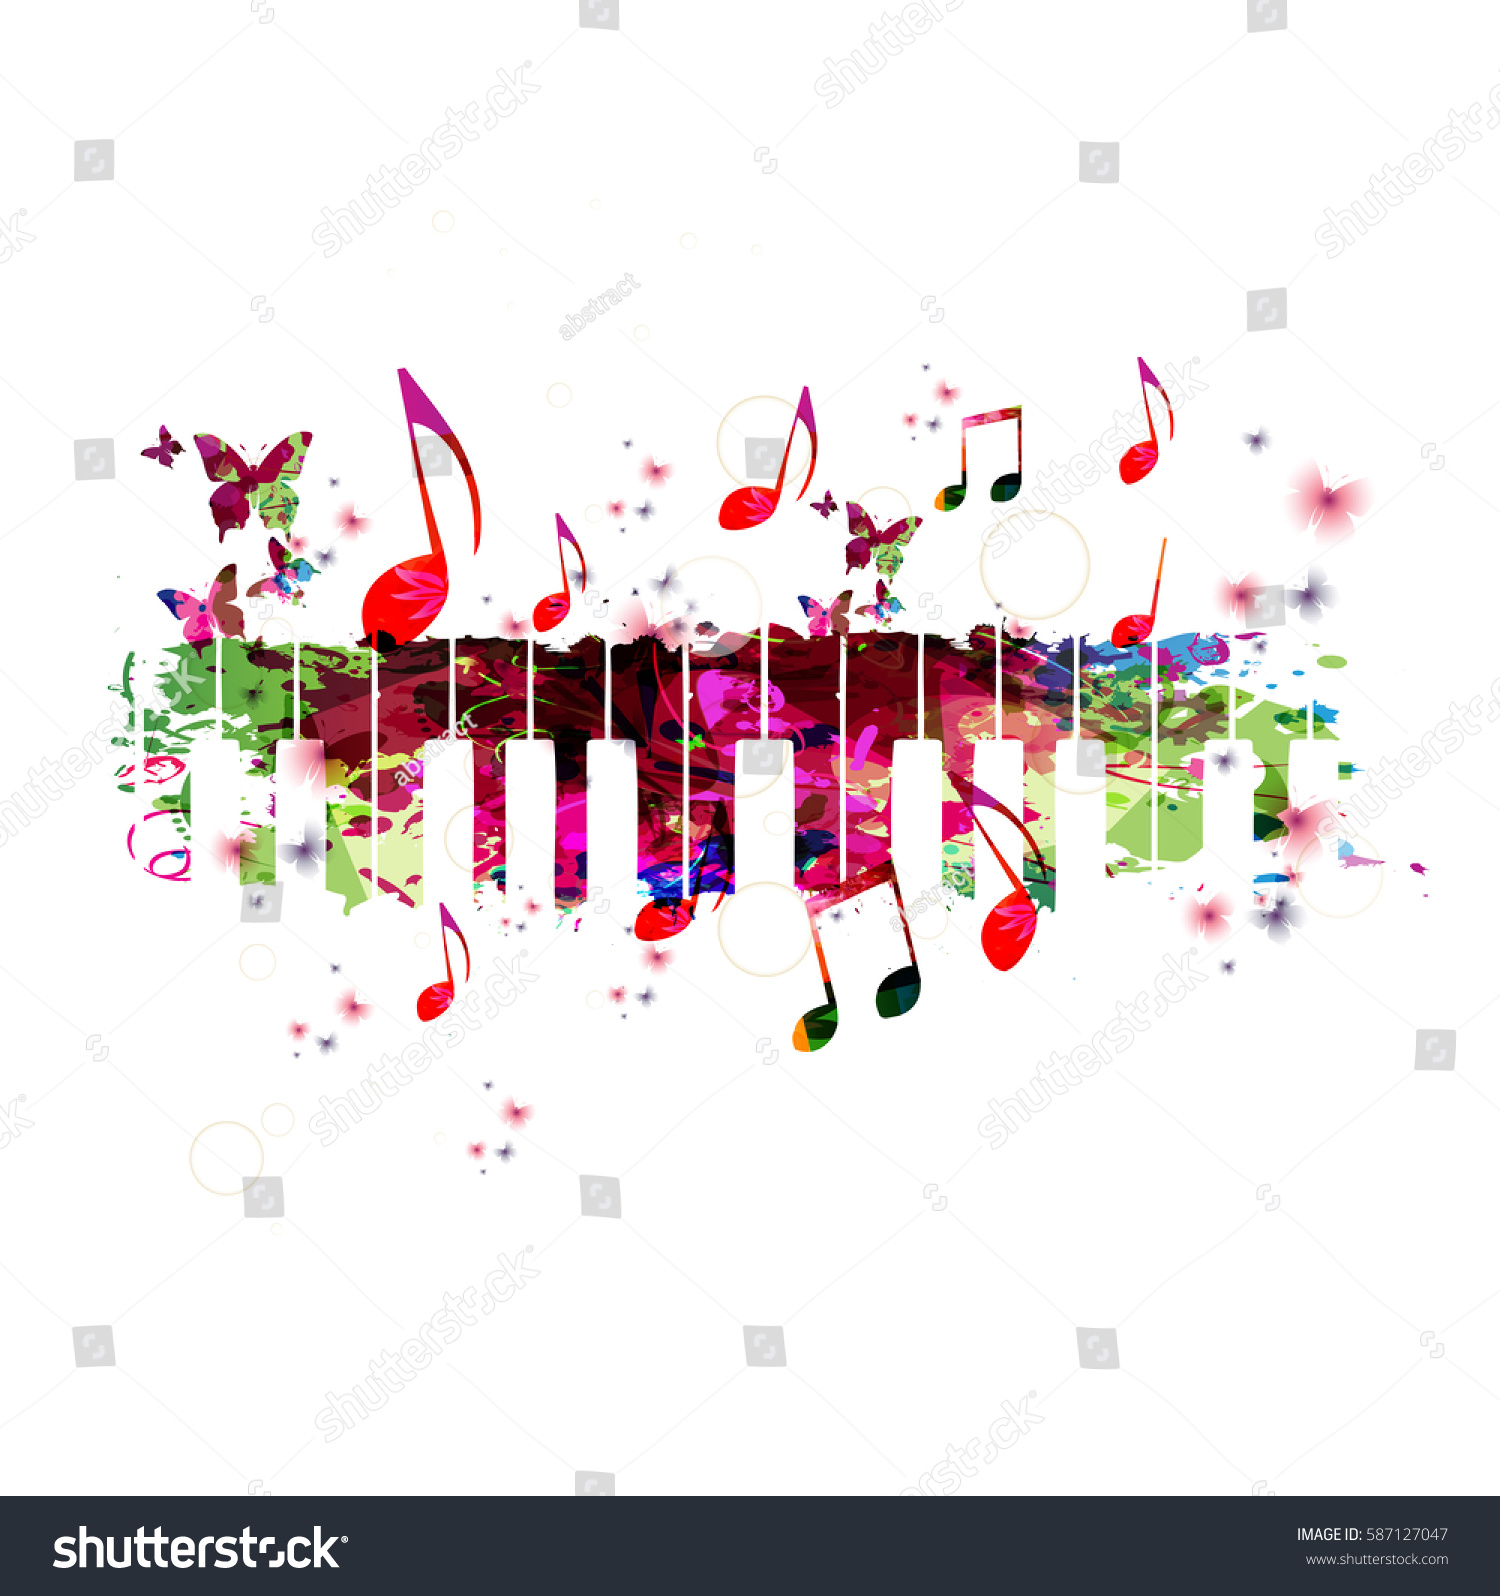 Poster design notes - Colorful Piano Keyboard With Music Notes Music Instrument Background Vector Illustration Design For Poster